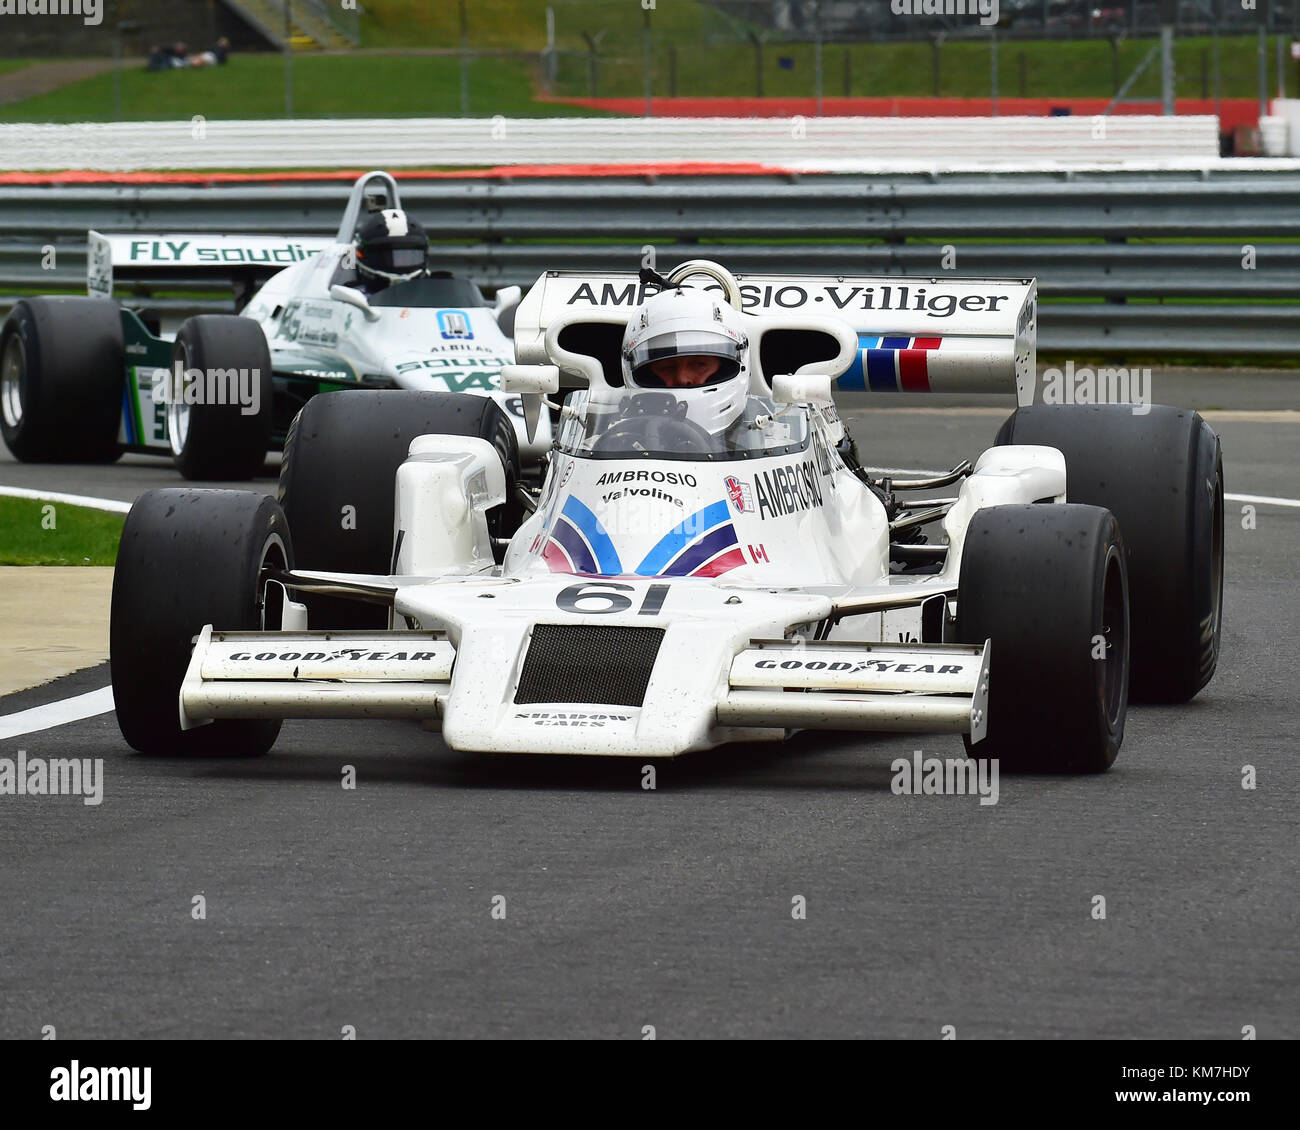 Jason Wright, Shadow DN8, FIA Masters, Historic Formula One, F1, Formula 1, Silverstone Classic, July 2017, Silverstone, - Stock Image